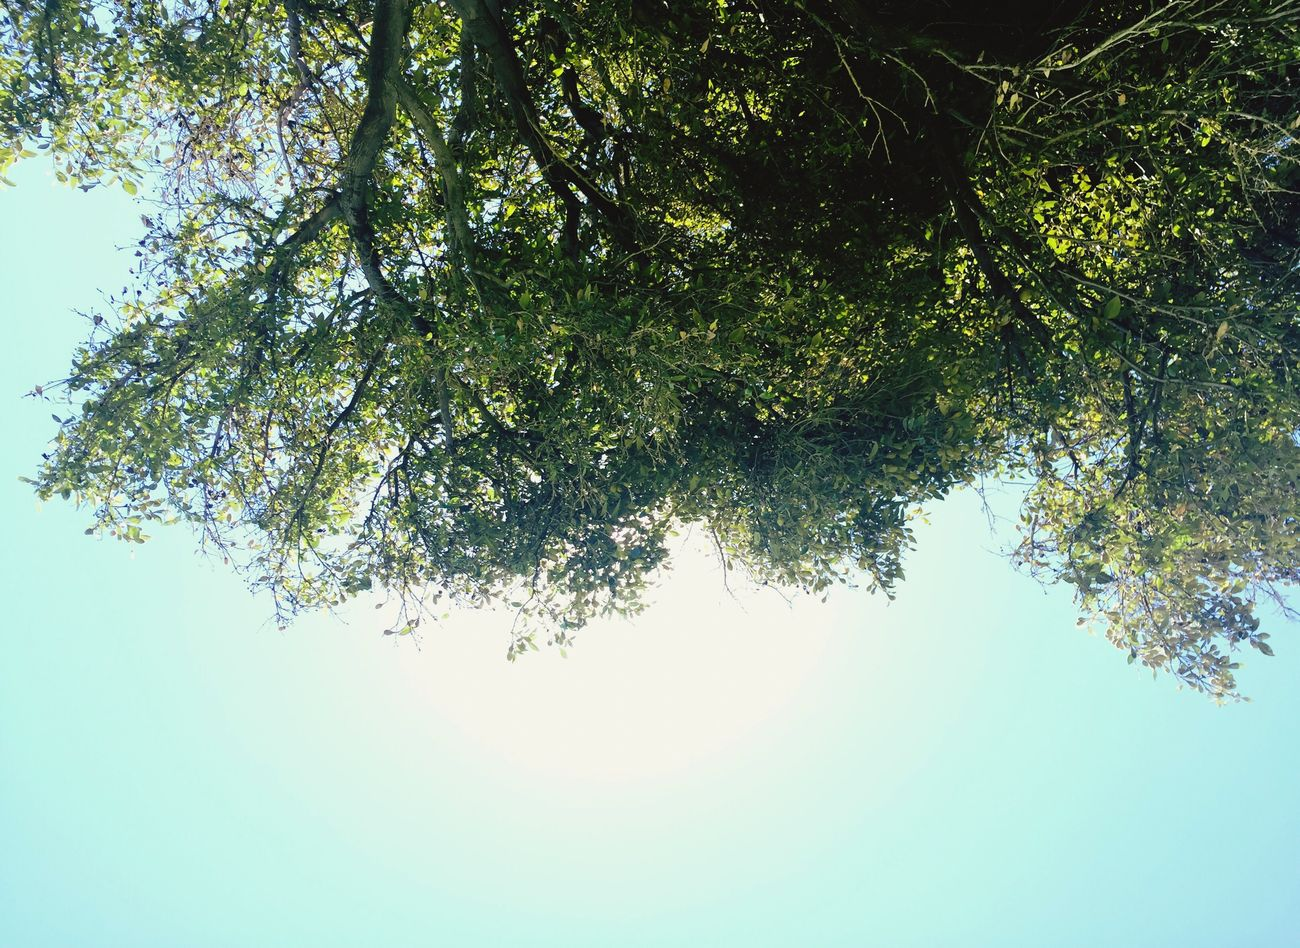 Lookingup Myview Lookabove Tree Above Facing The Sky Tree Branches Tree Branch Against The Sky Nature Outdoors EyeEmNewHere Beach Park Nature Greenery EyeEmNewHere